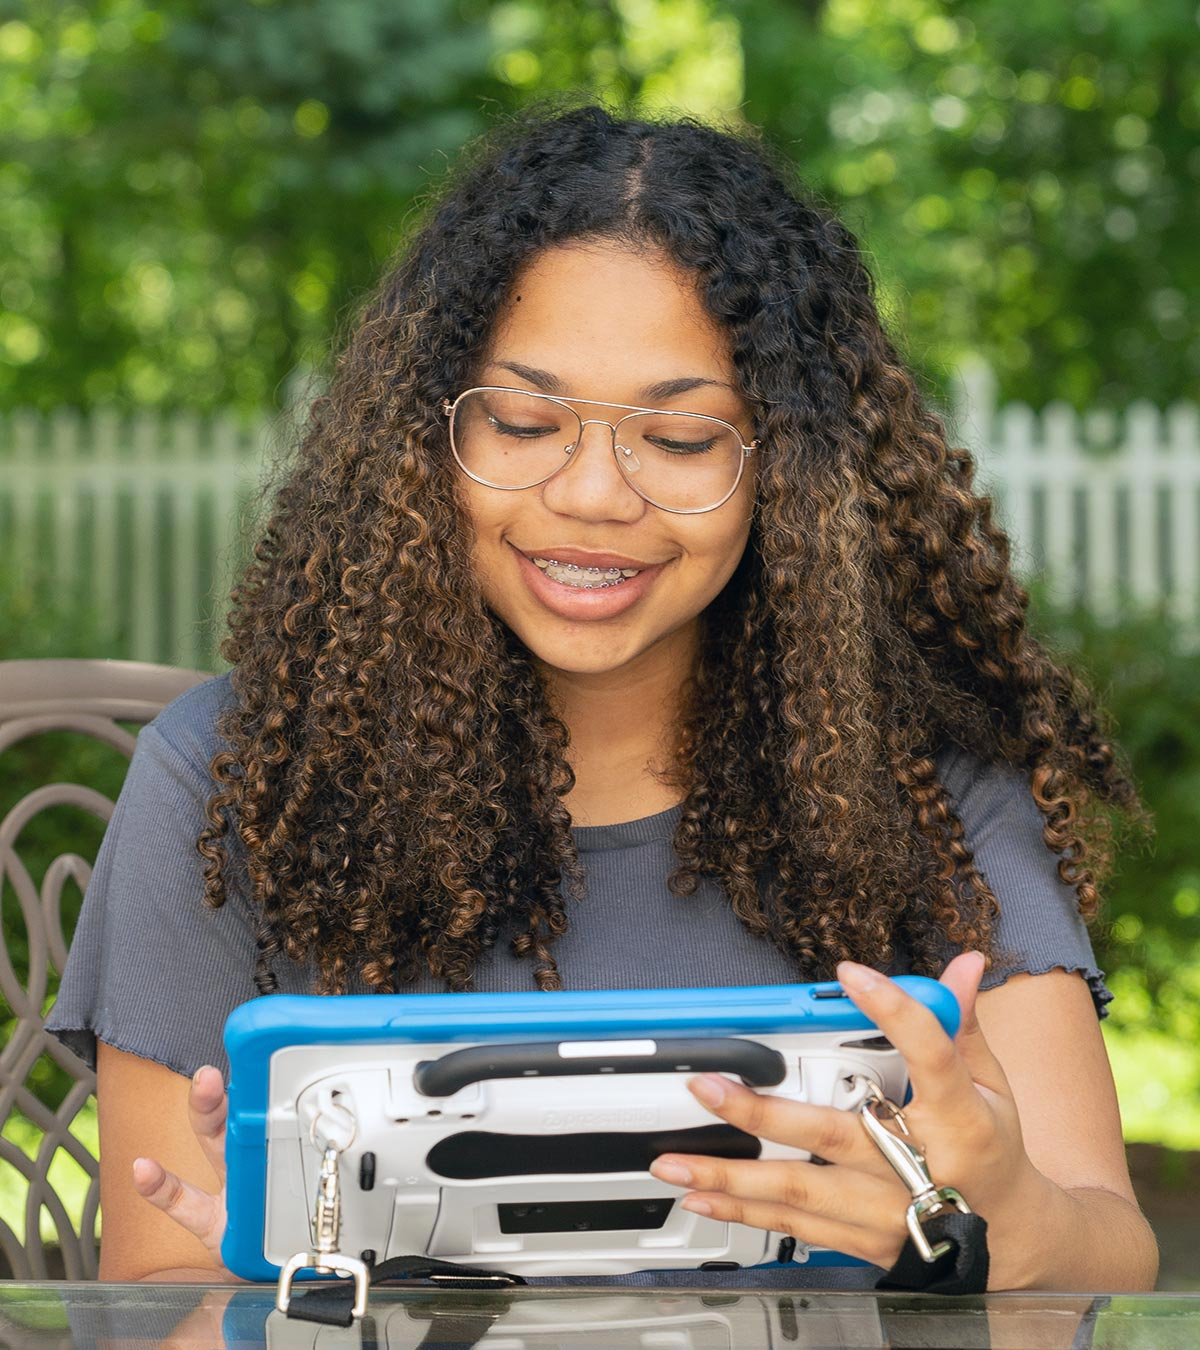 Image of a girl using a speech device